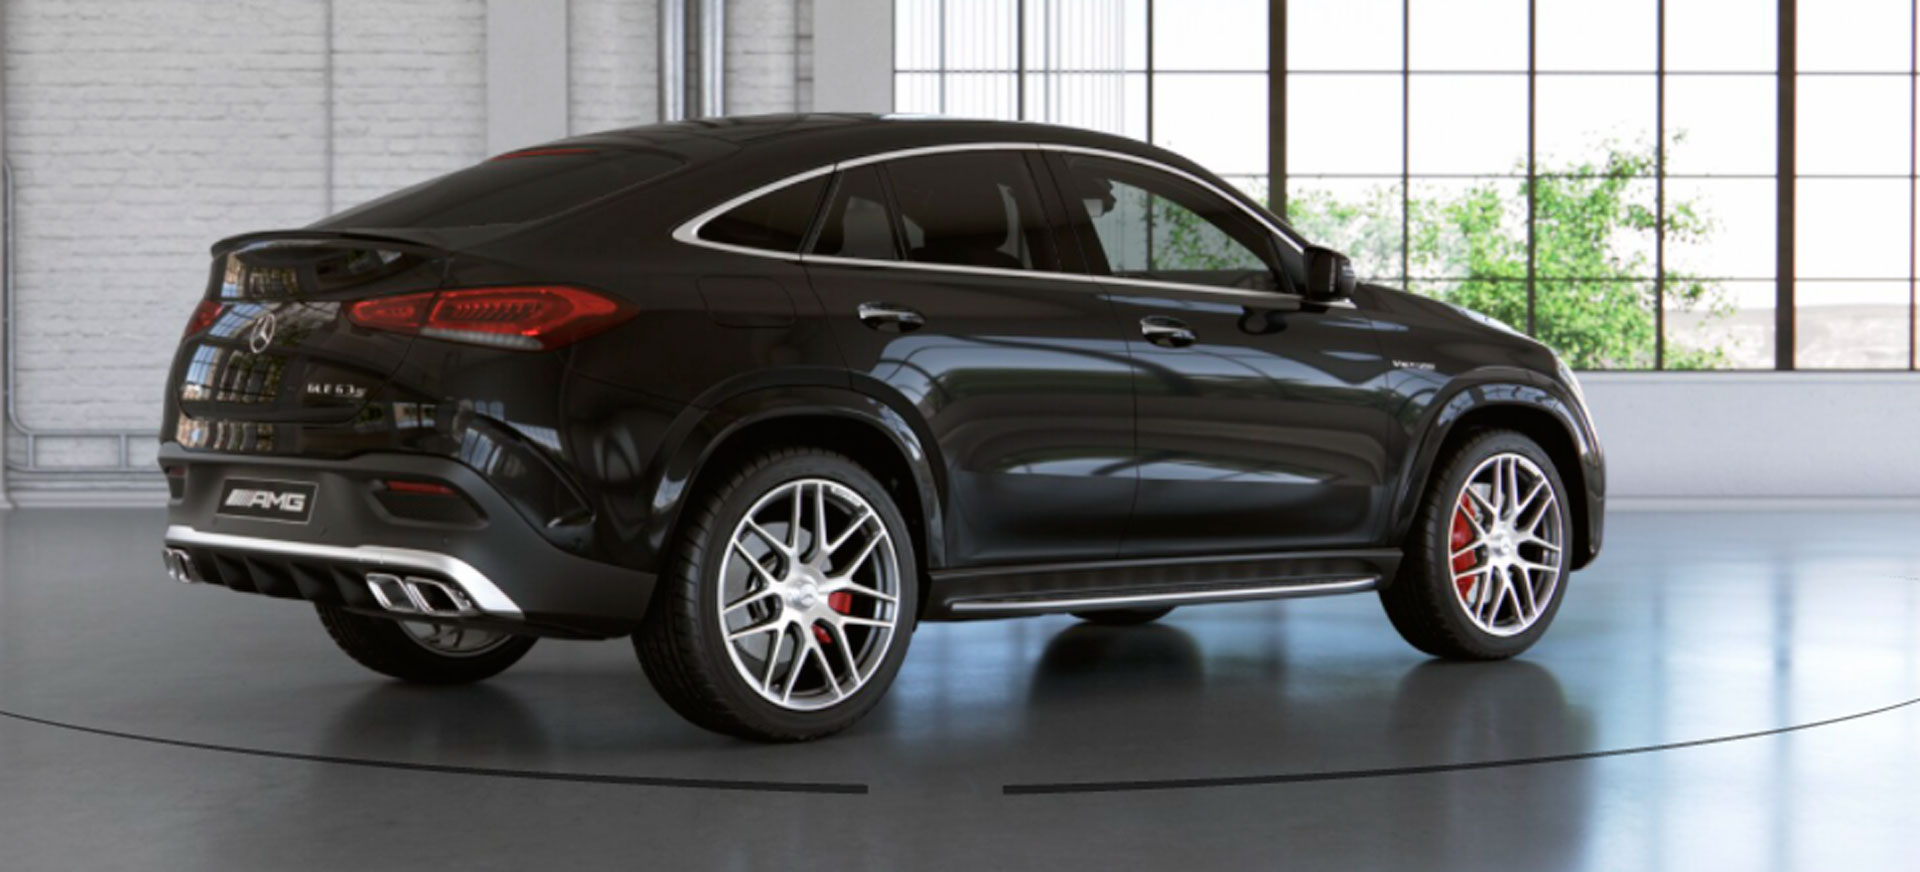 Mercedes-AMG GLE 53 4 matic+ Coupe фото 3